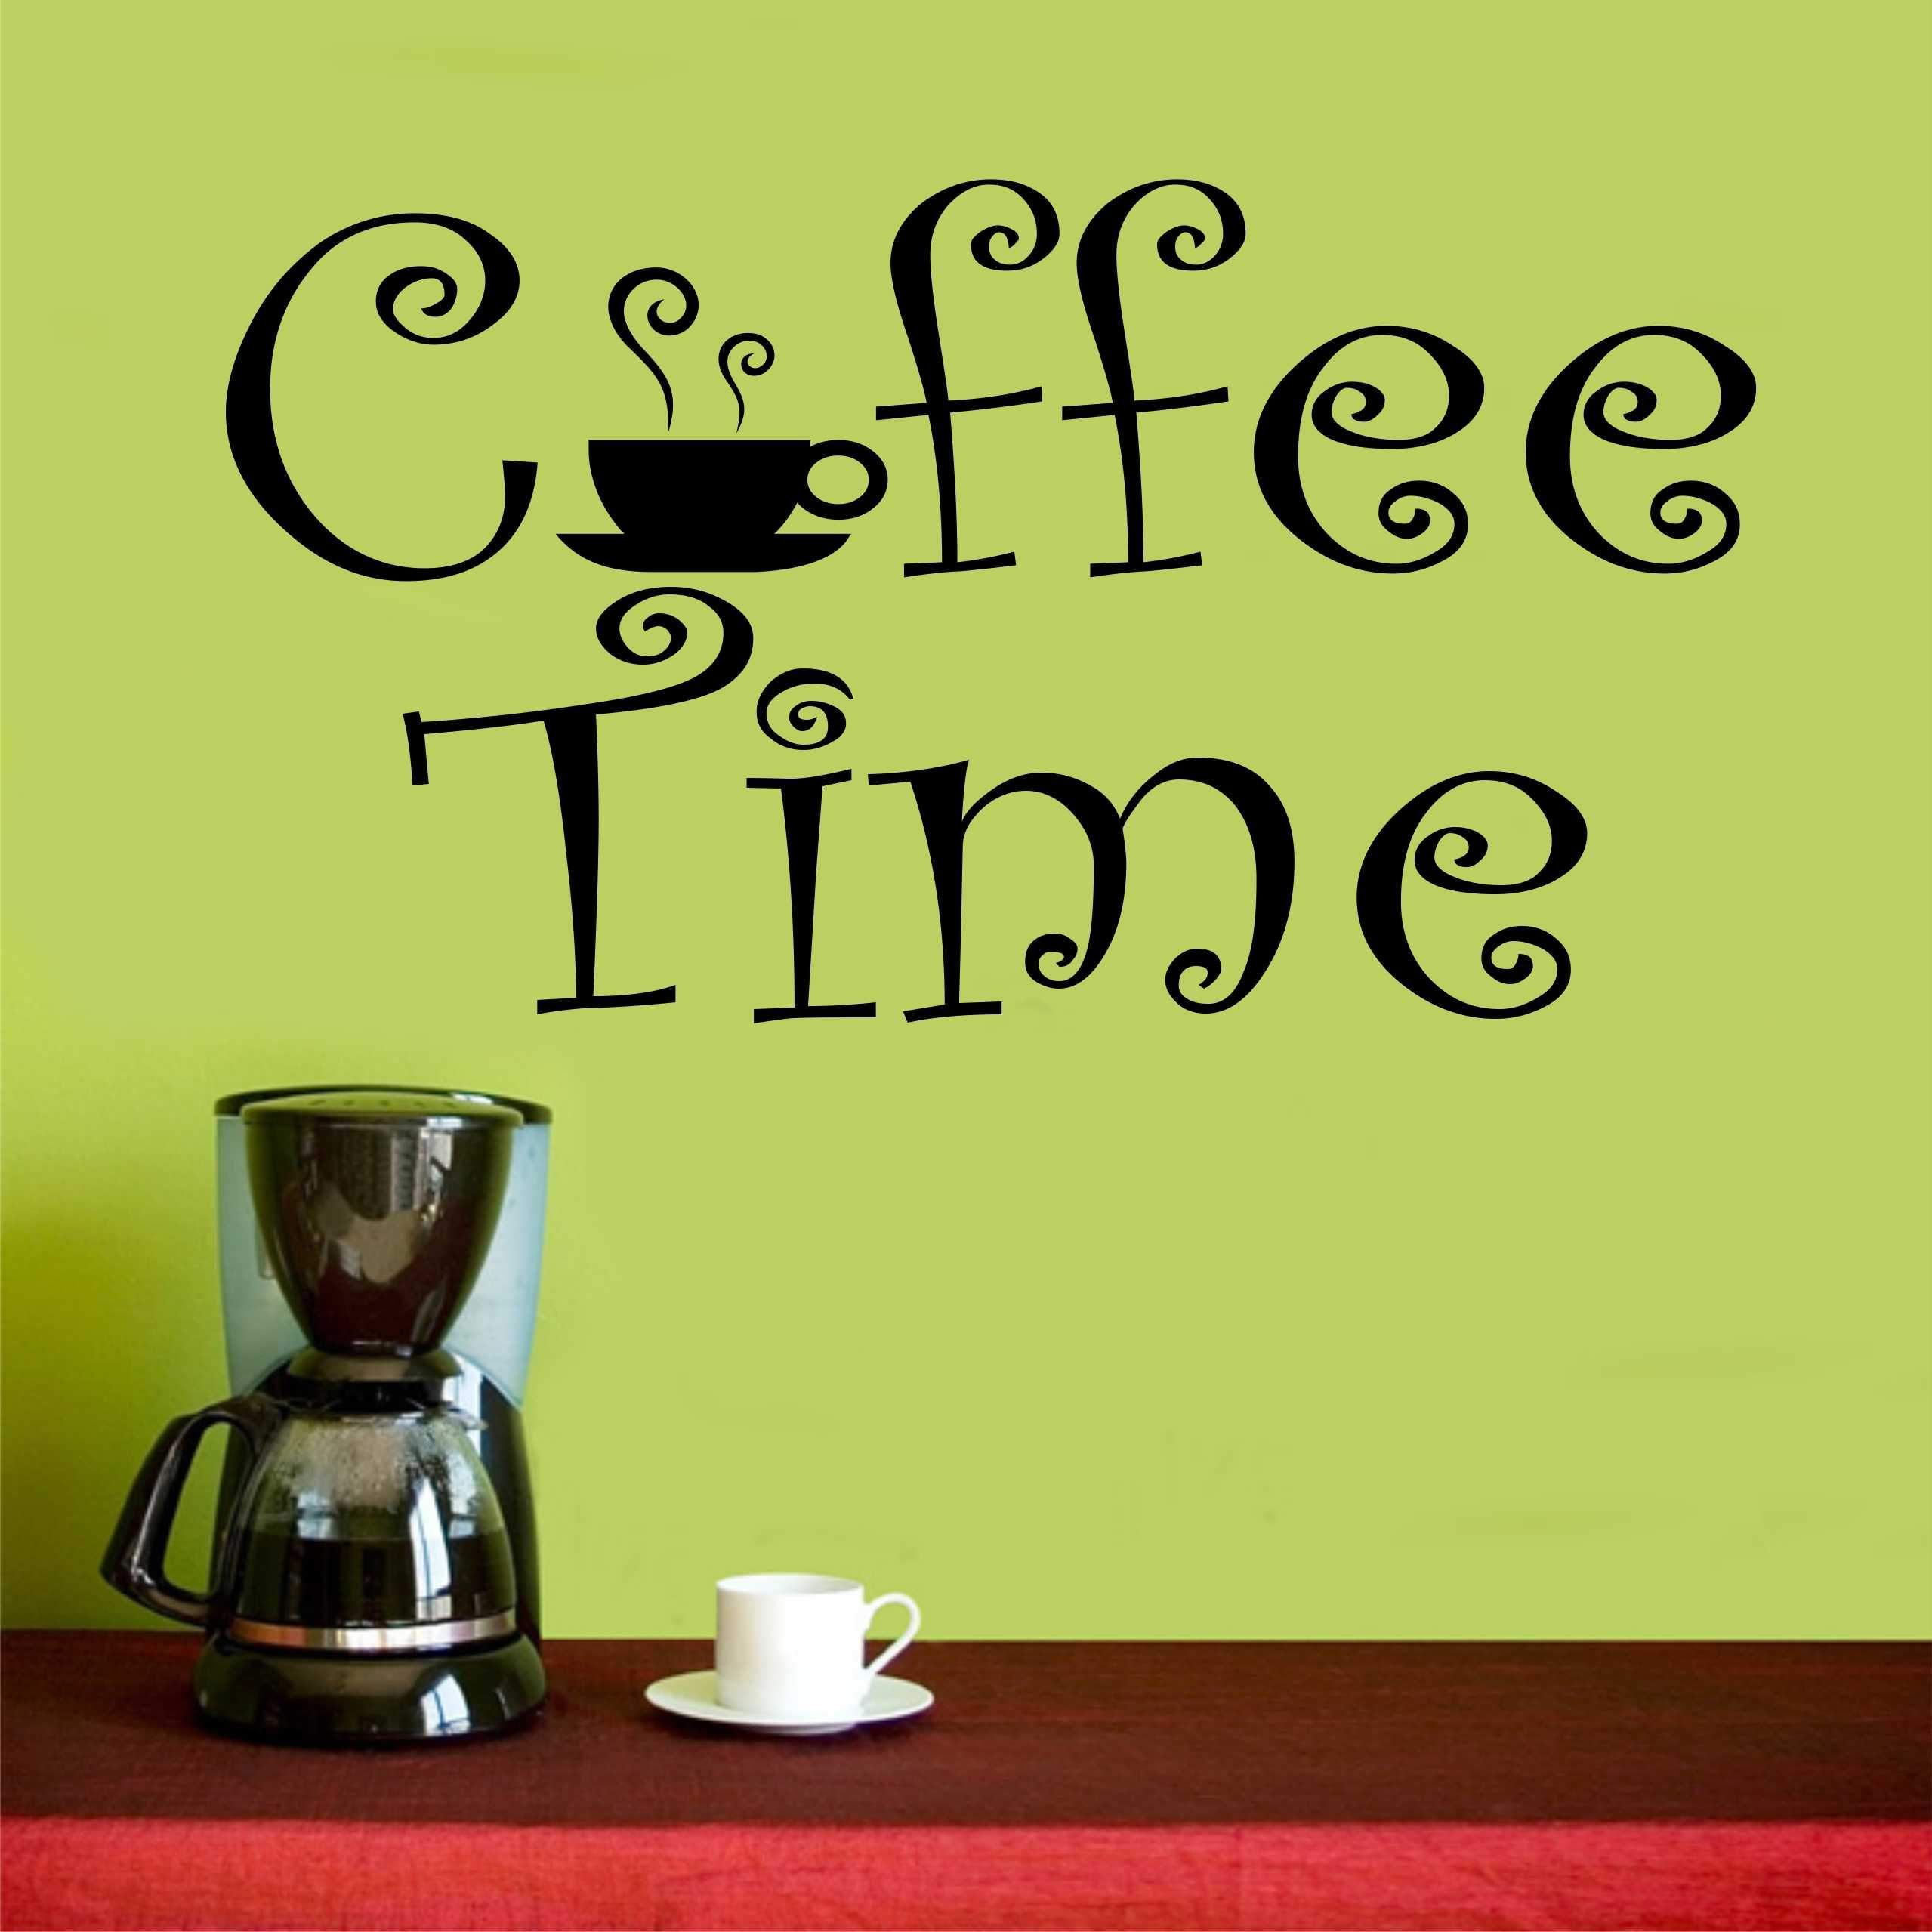 coffee wall decal coffee time whimsical farmhouse decor coffee quotes coffee time quotes on kitchen decor quotes wall decals id=69395